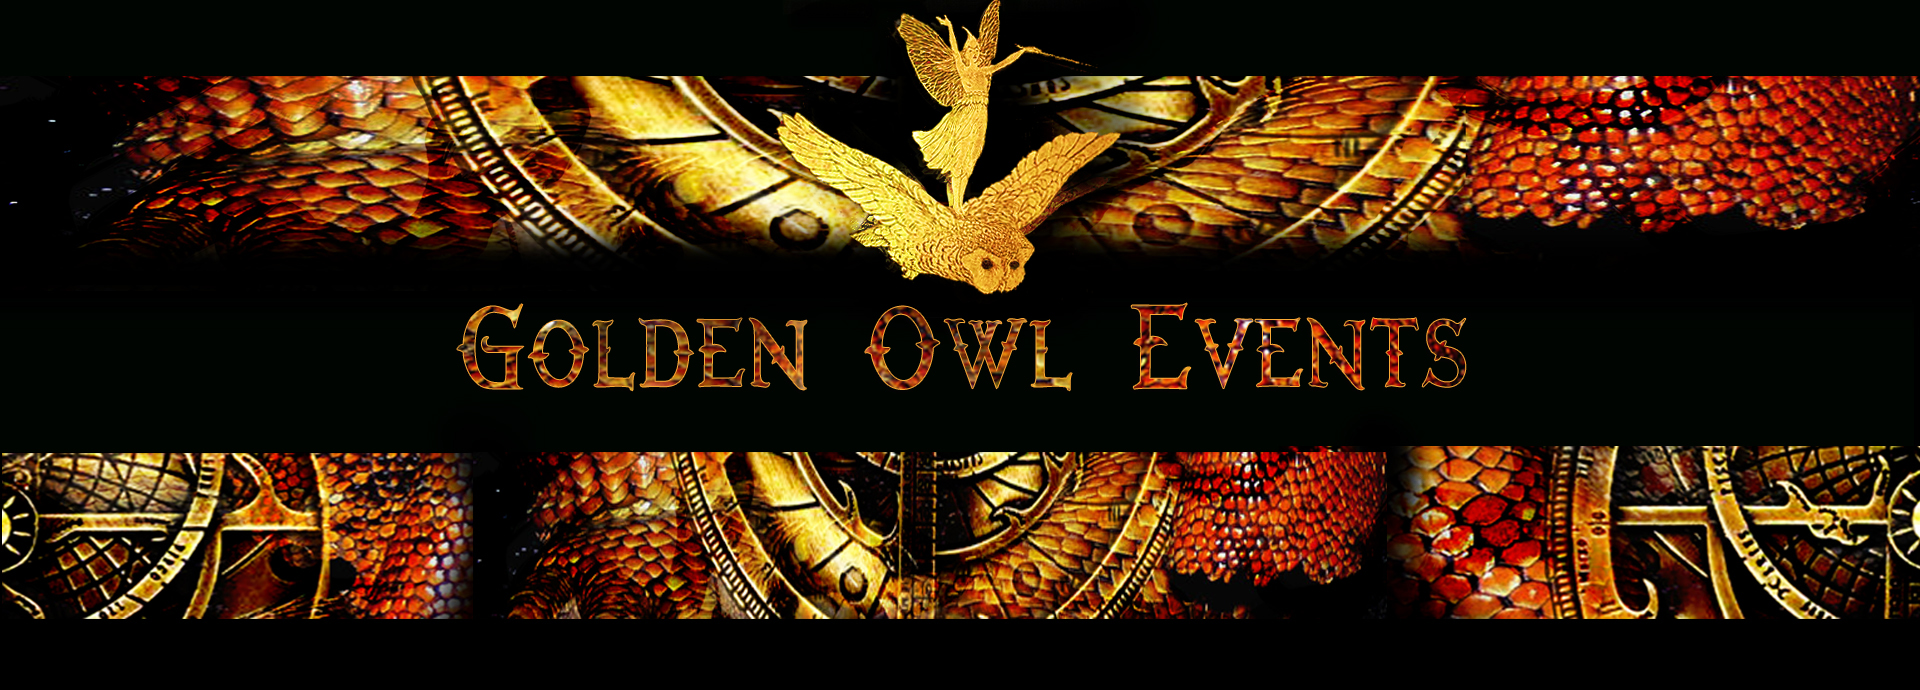 Golden Owl Events logo